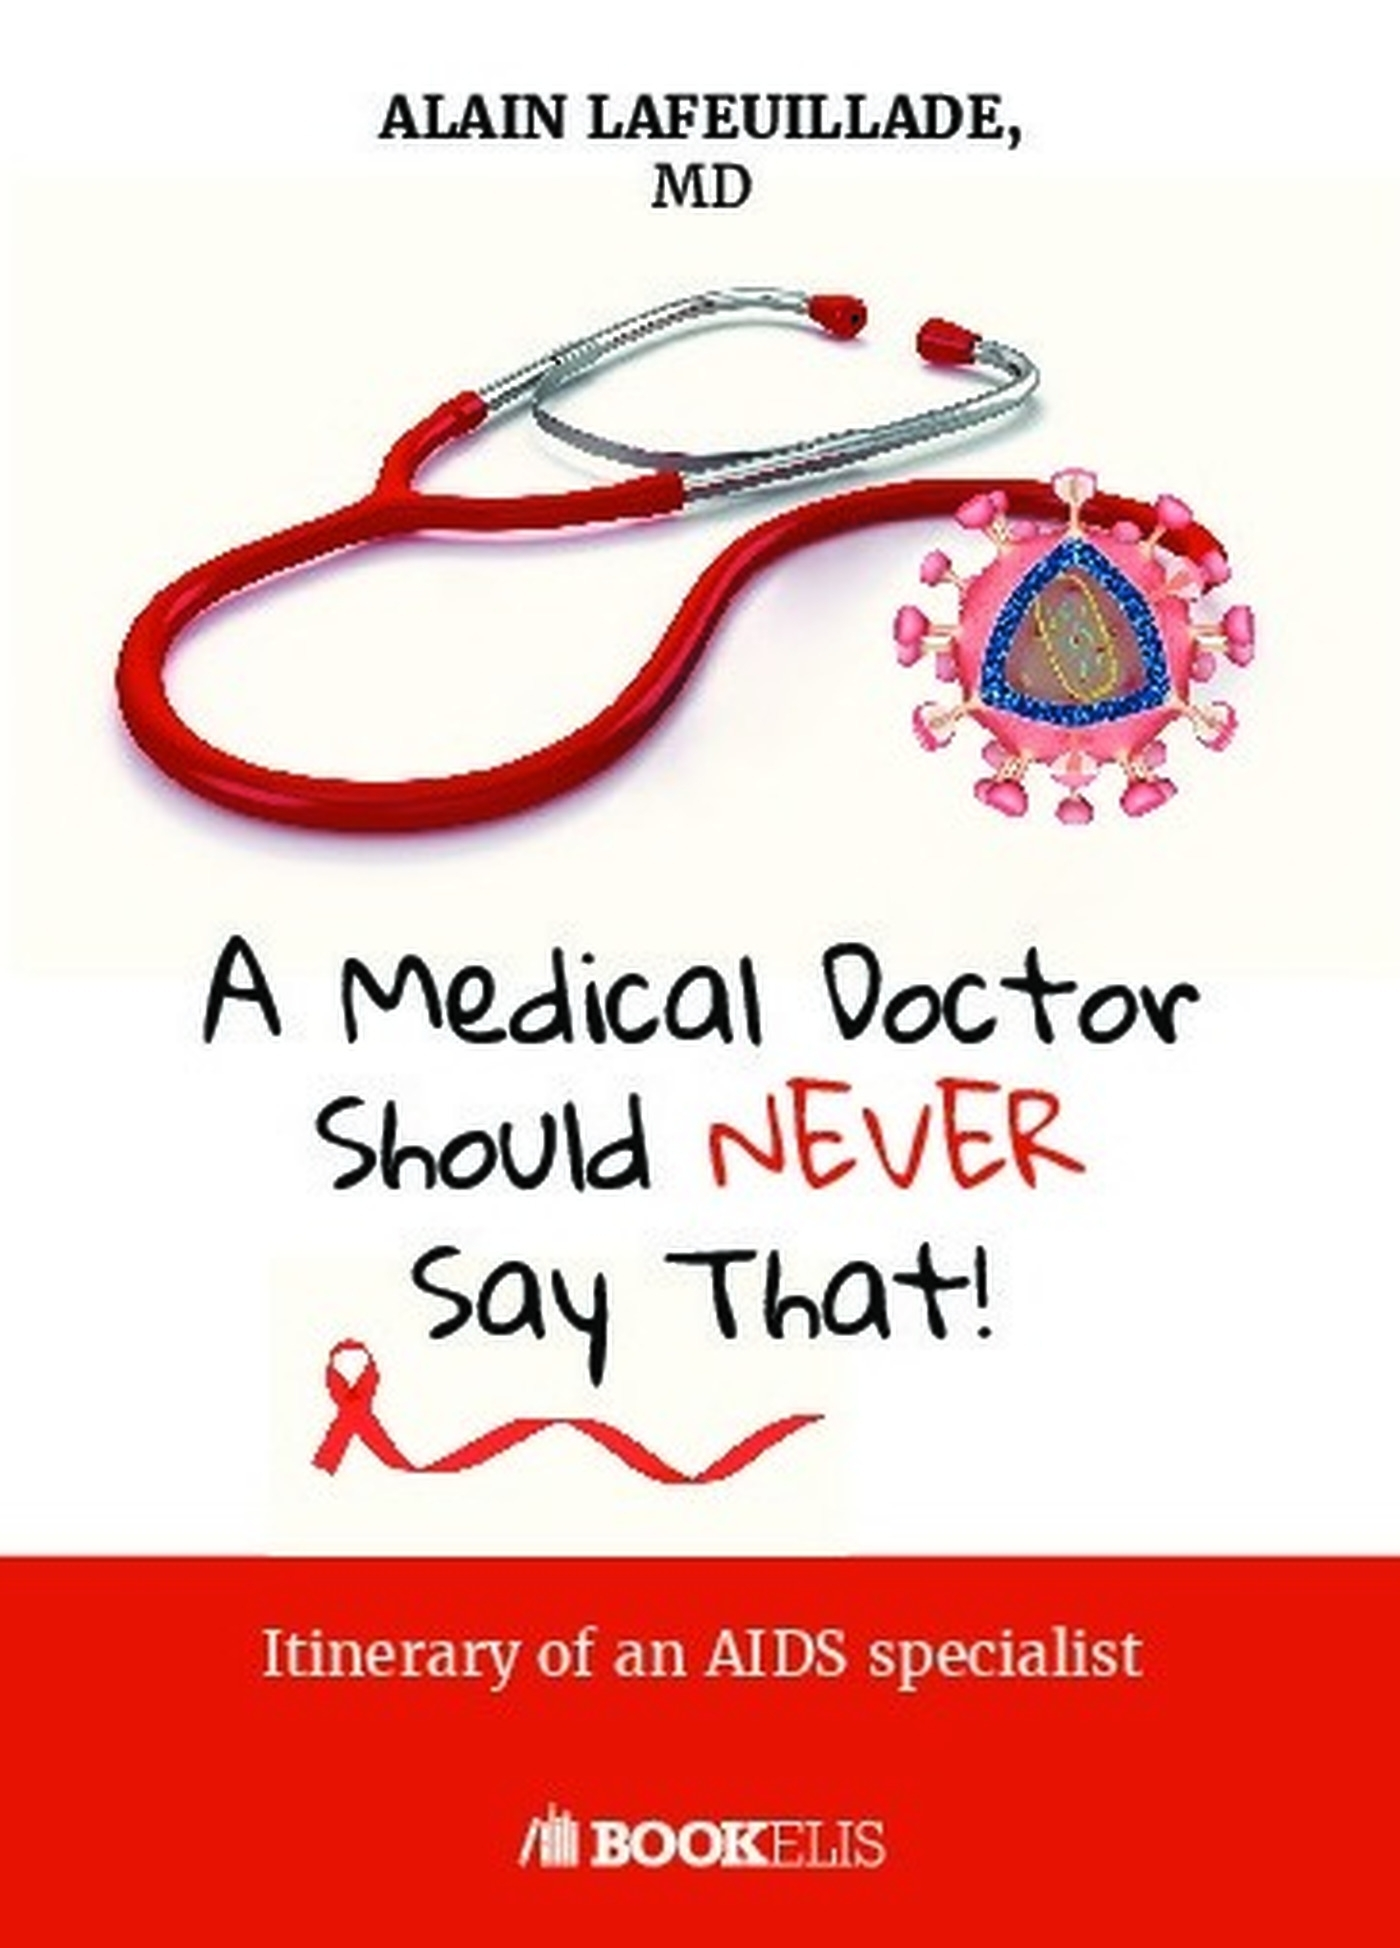 A MEDICAL DOCTOR SHOULD NEVER SAY THAT... - ITINERARY OF AN AIDS SPECIALIST